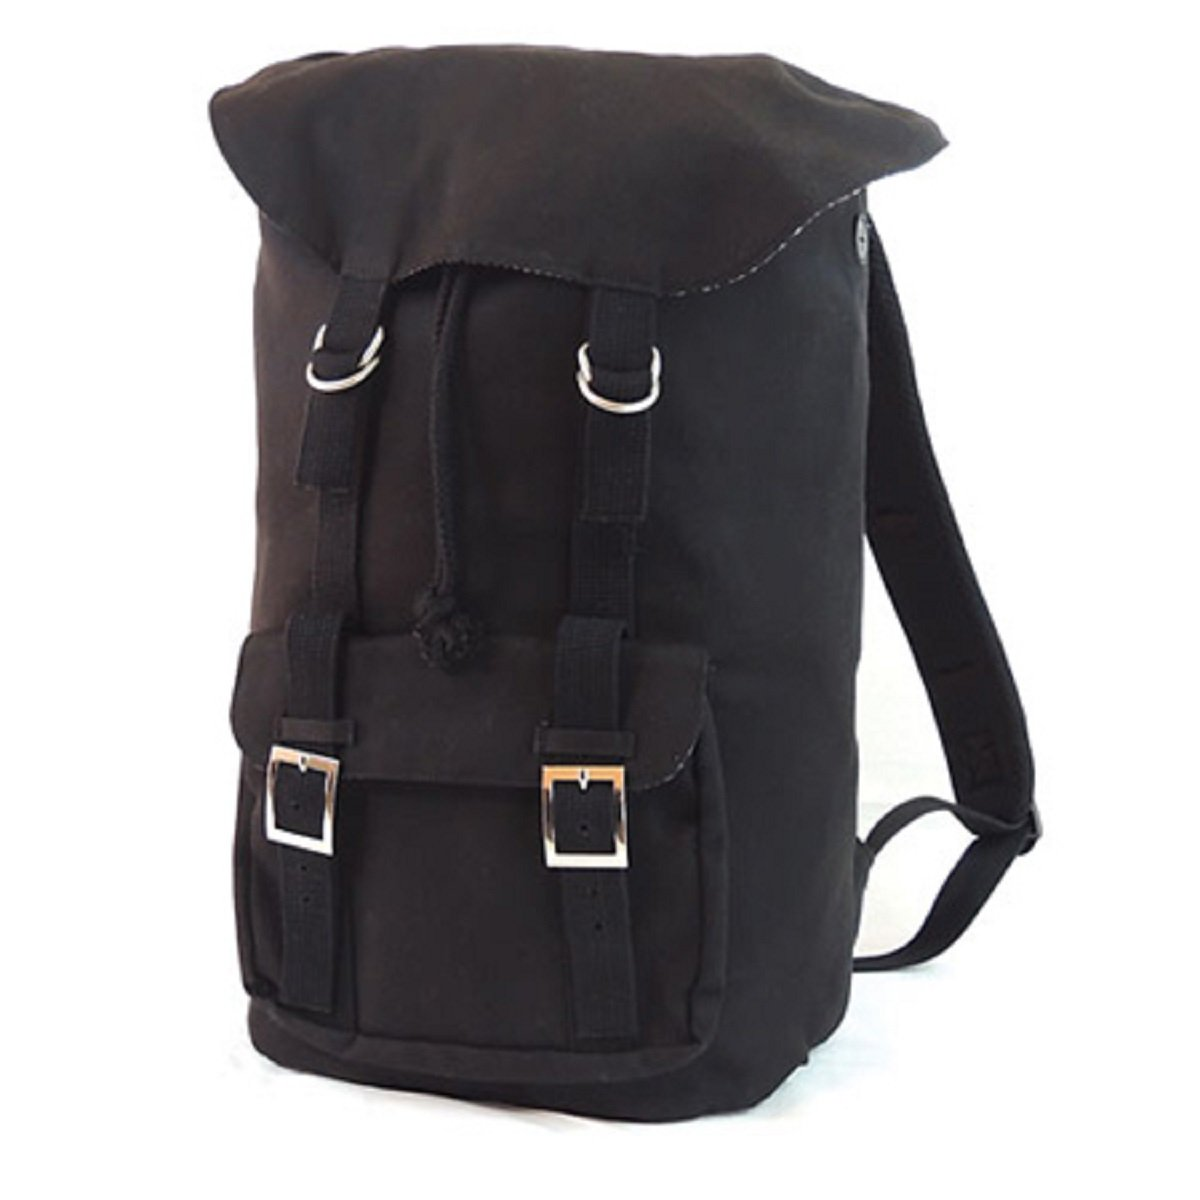 VOYAGER CANVAS BACKPACK, Black, Case of 6 by DollarItemDirect